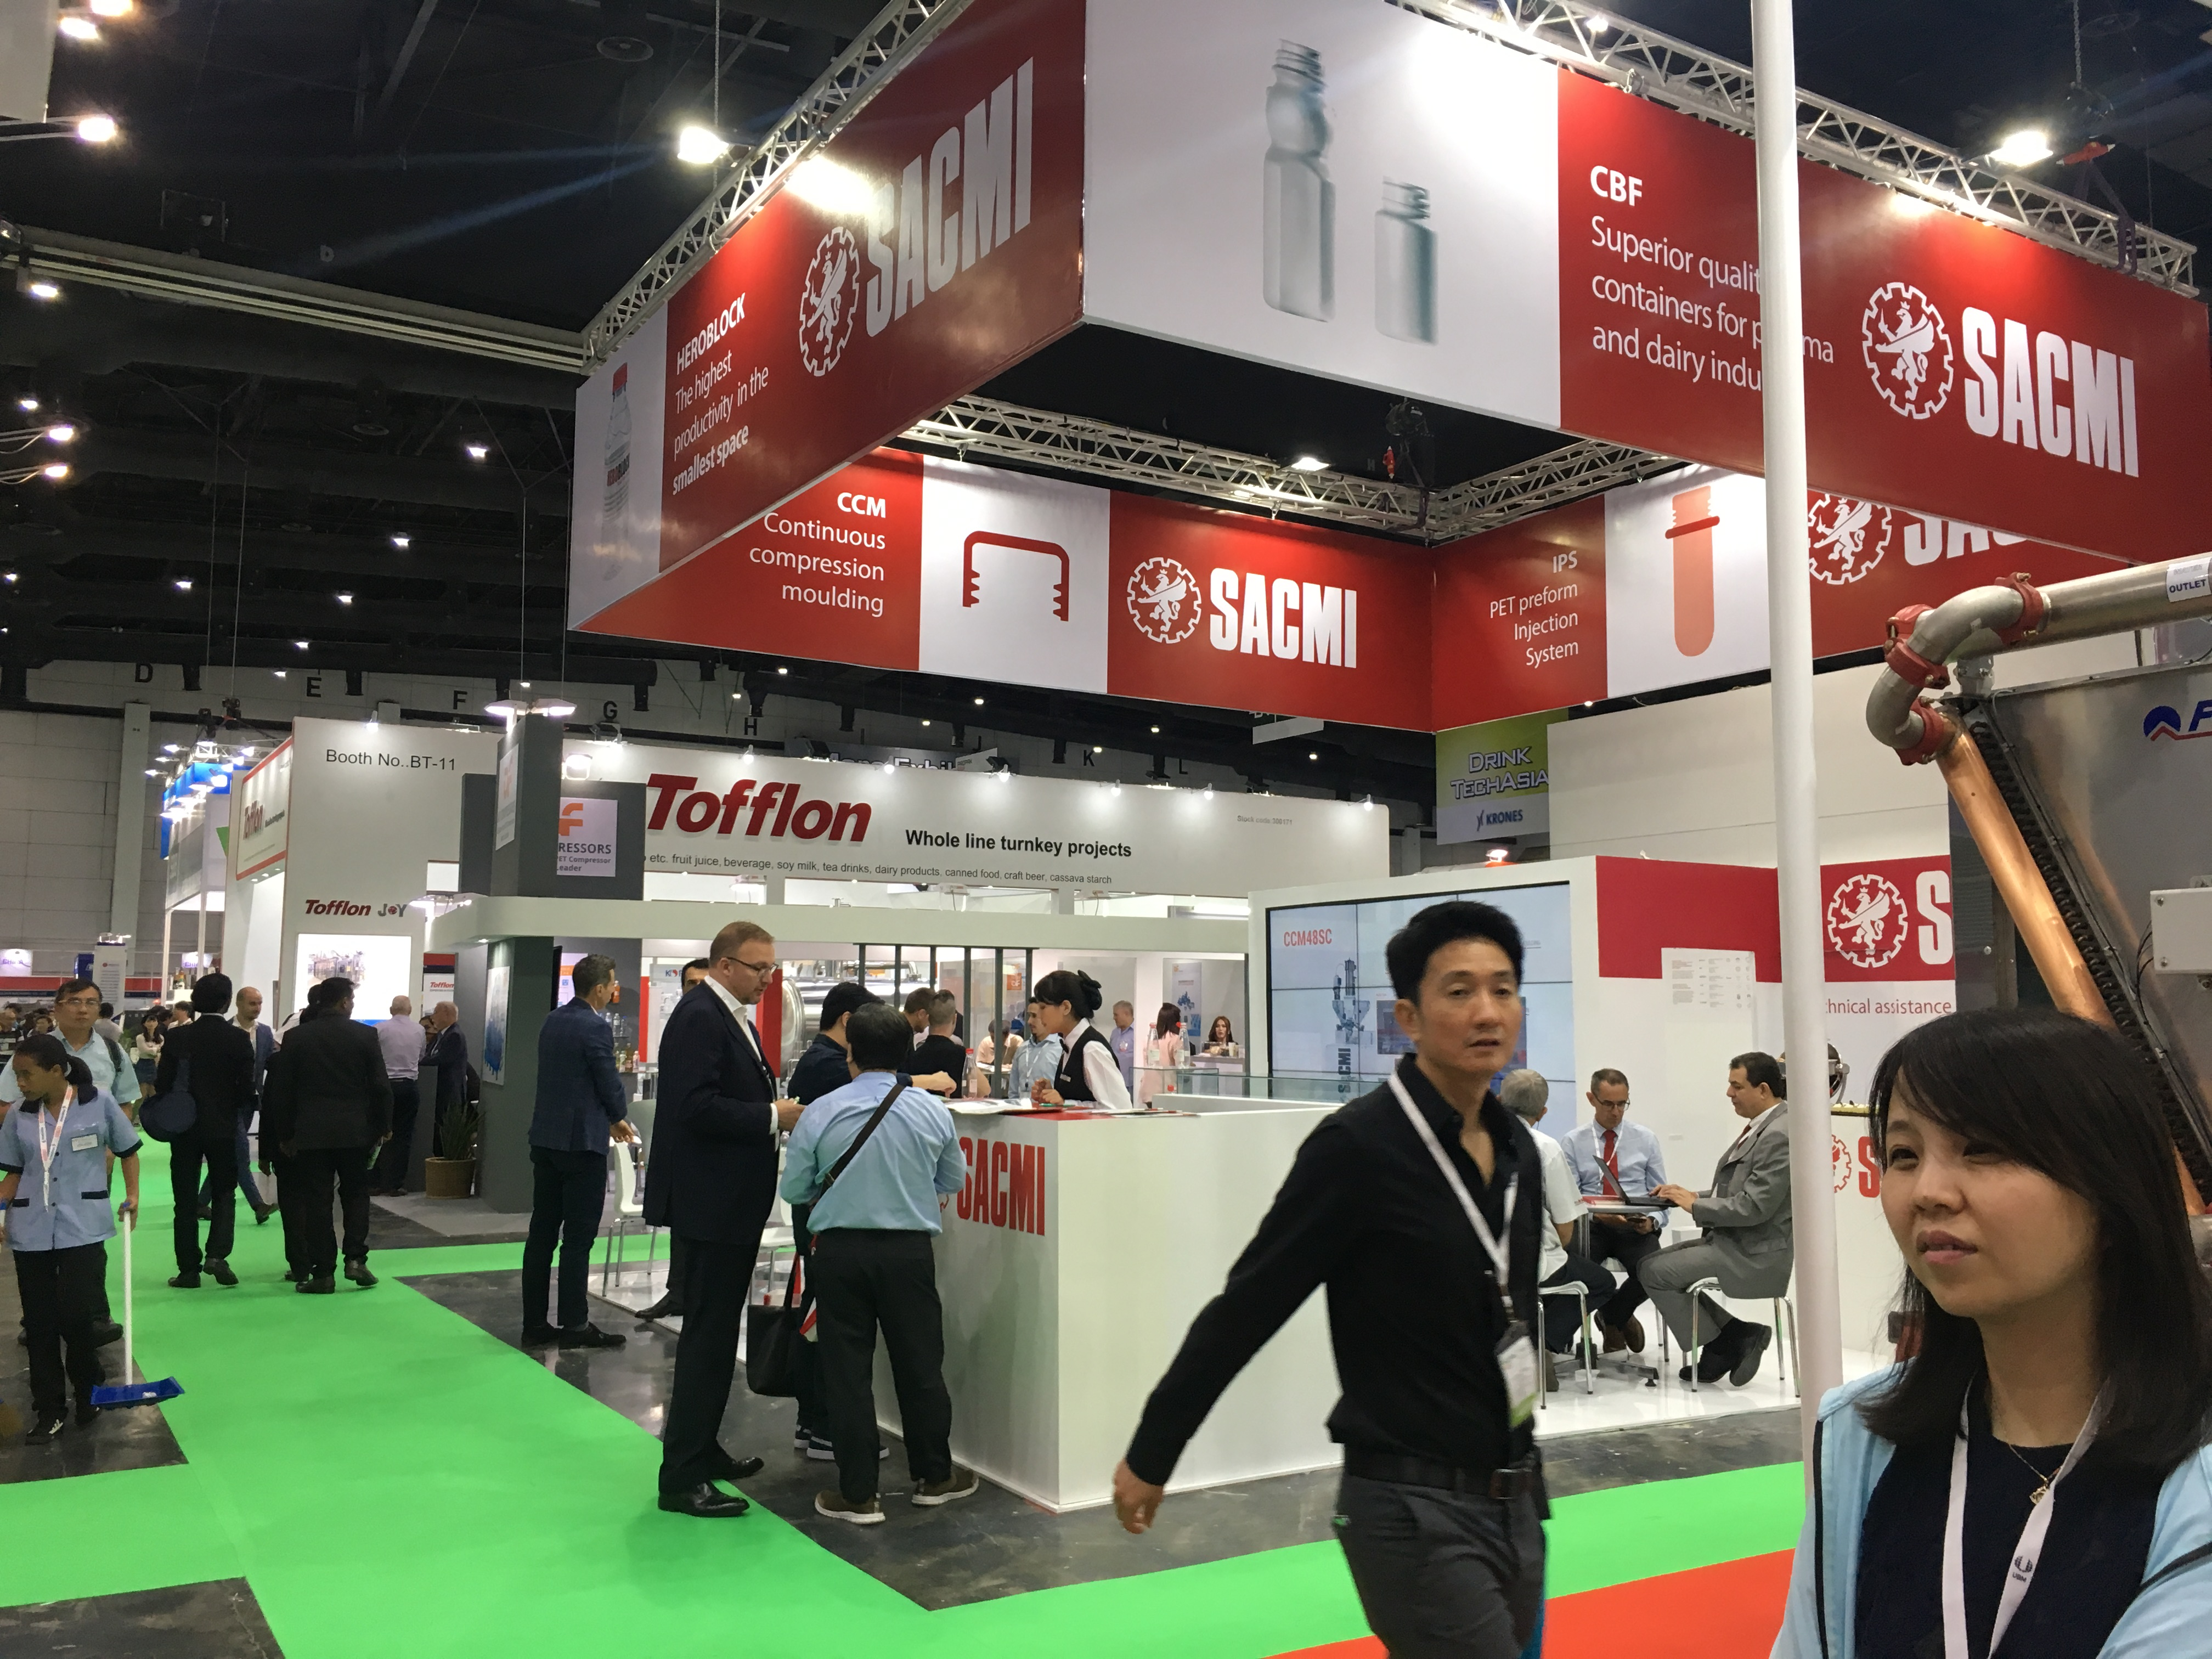 Propak Asia 2019, five good reasons to visit the SACMI stand